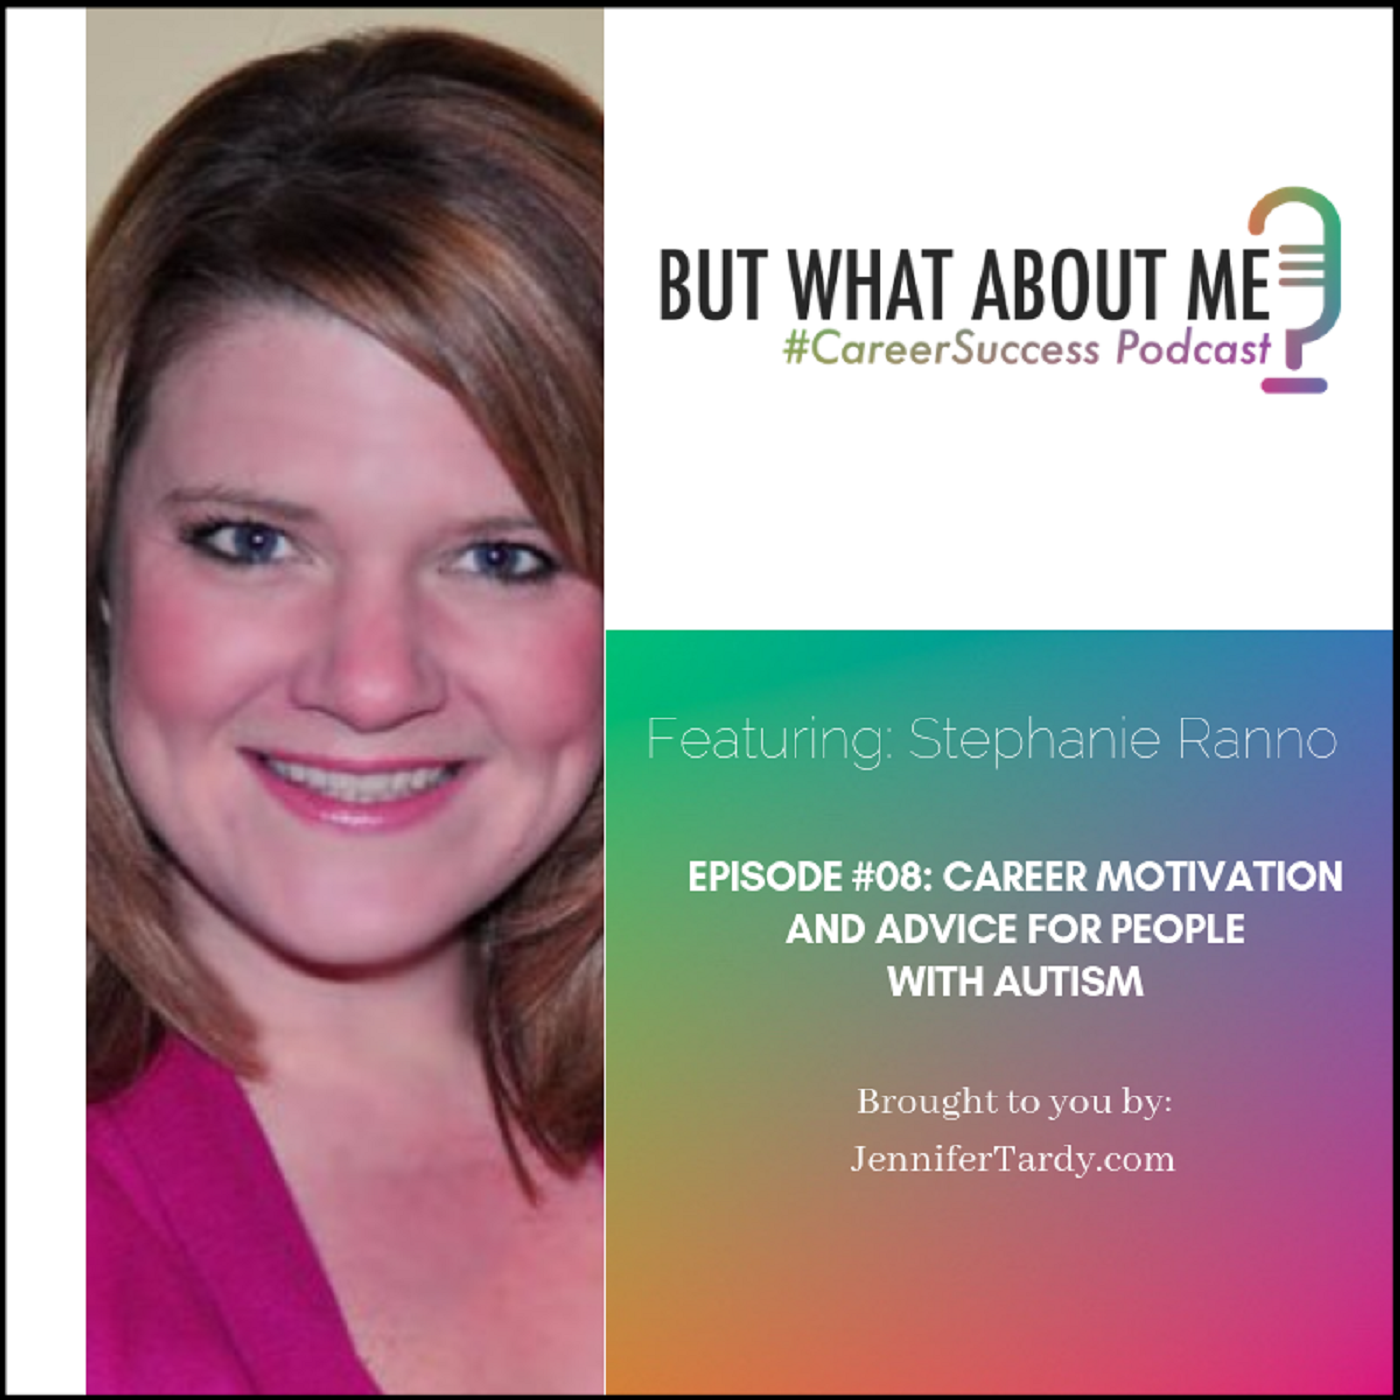 Episode 8: Career Motivation And Advice For People With Autism